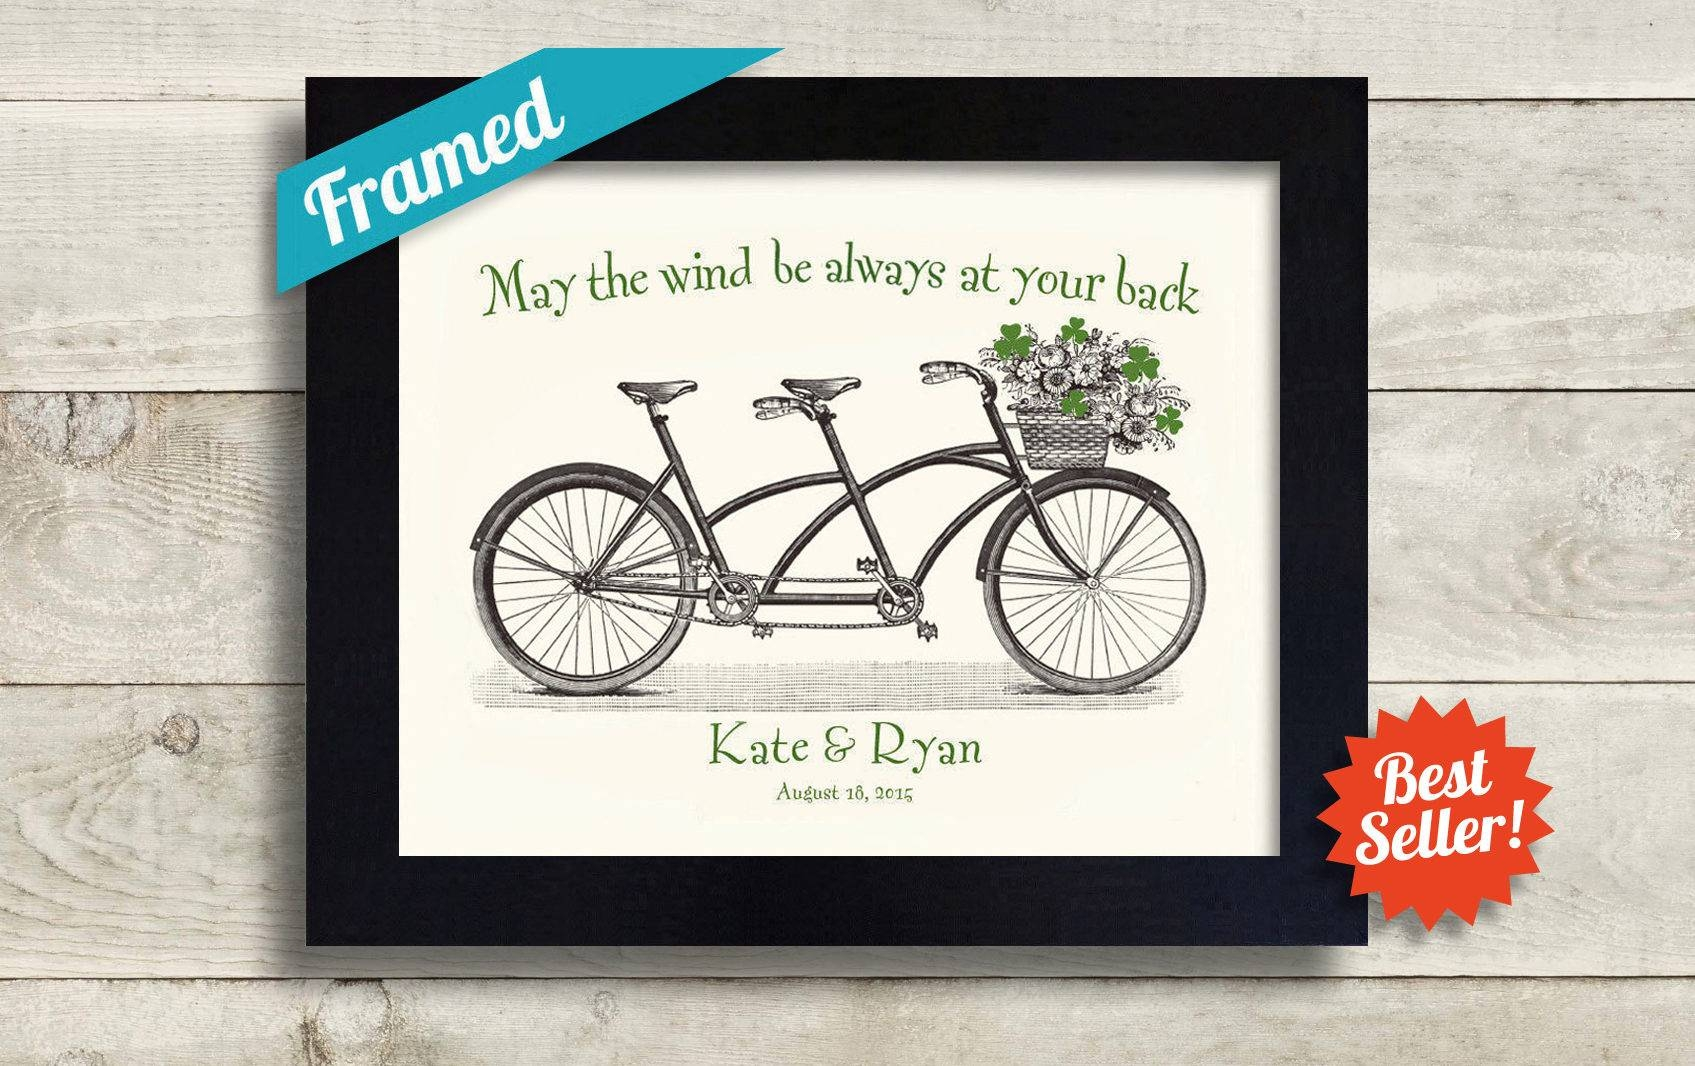 Personalized Irish Wedding Gift Irish Gift Unique Engagement Pertaining To Irish Engagement Gifts (View 7 of 15)